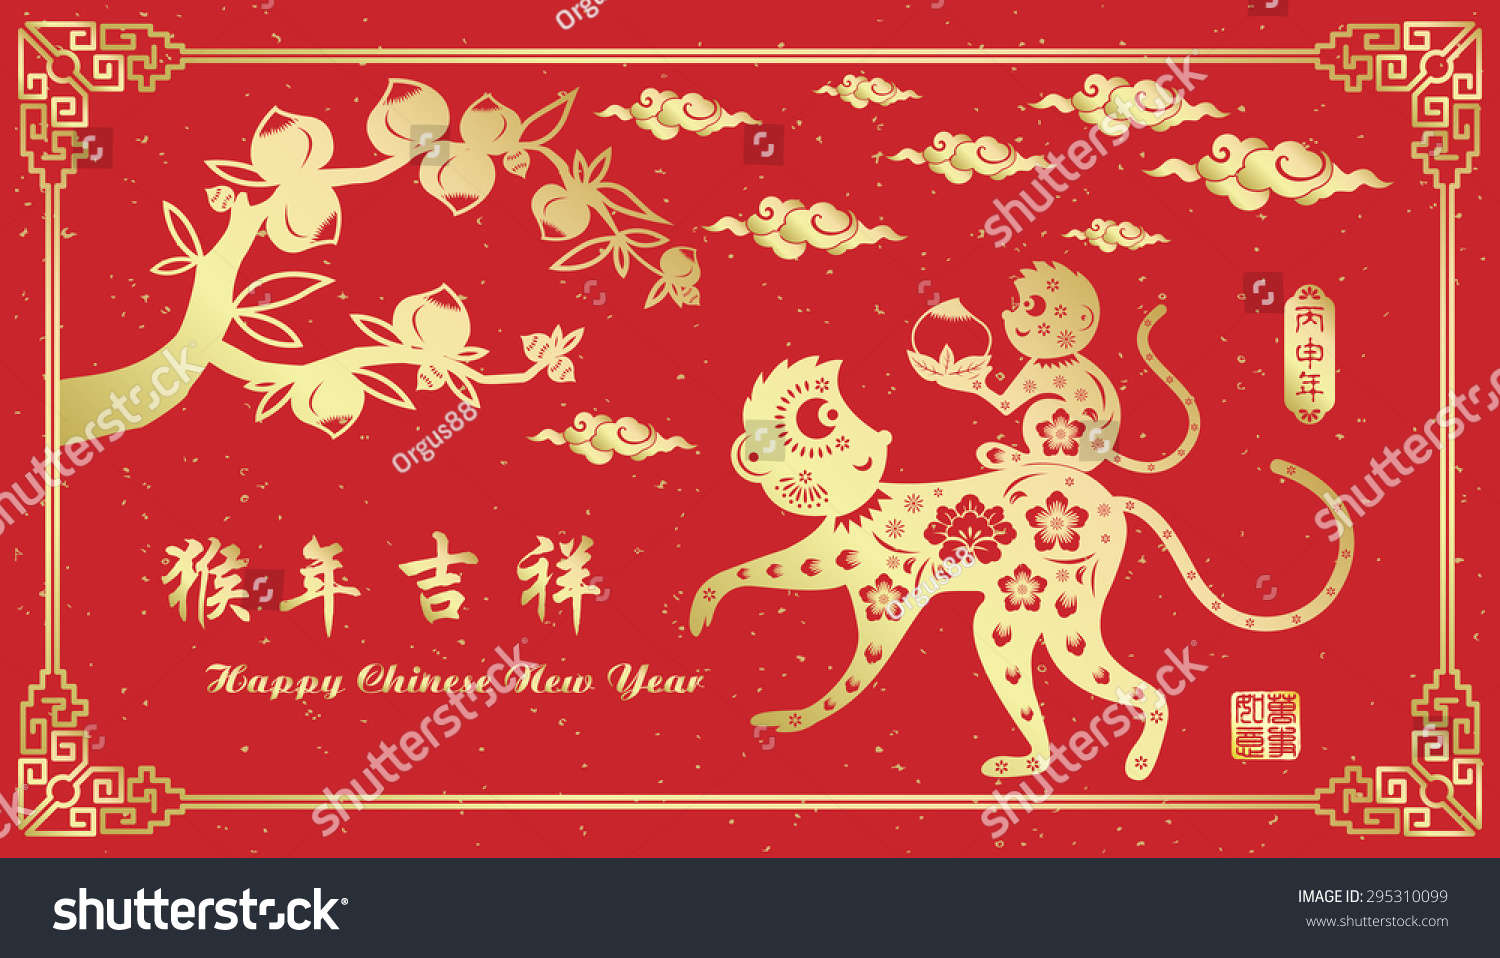 Chinese New Year Greeting Card Design Chinese Stock Vector 295310099